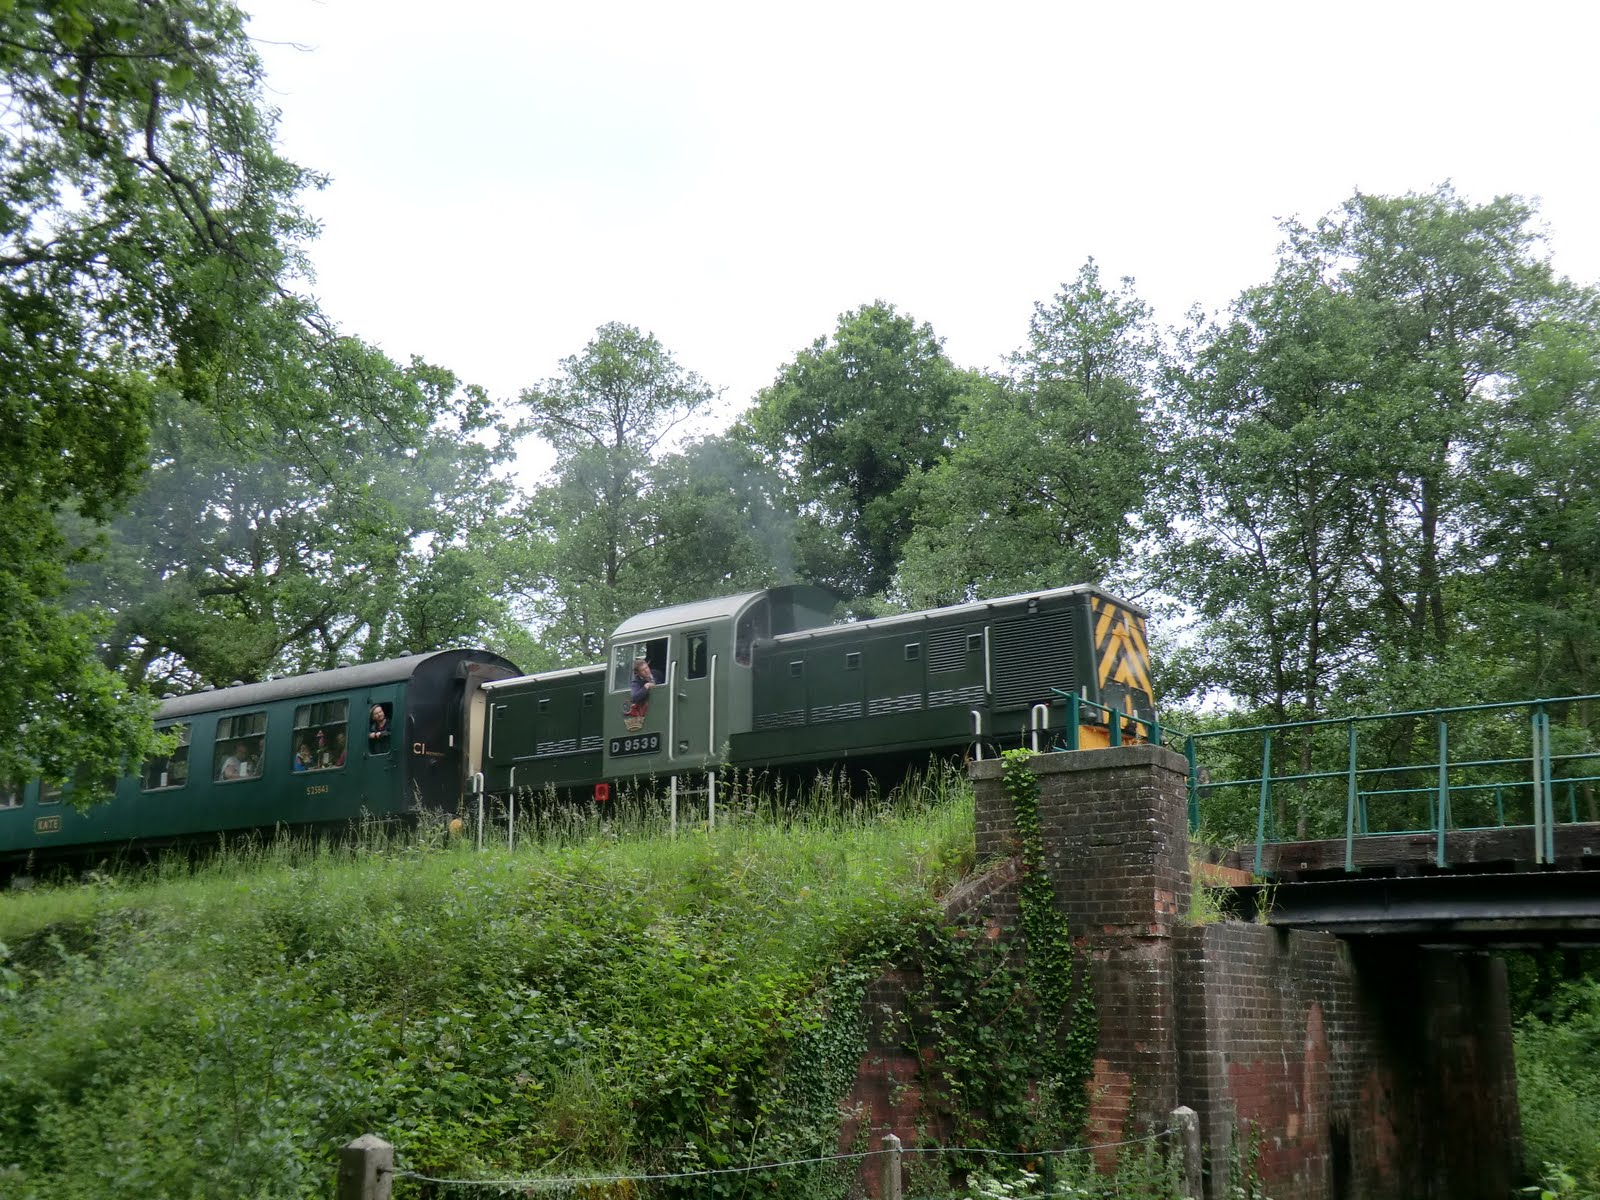 CIMG8564 A diesel-hauled SVR train passes Friezland Wood